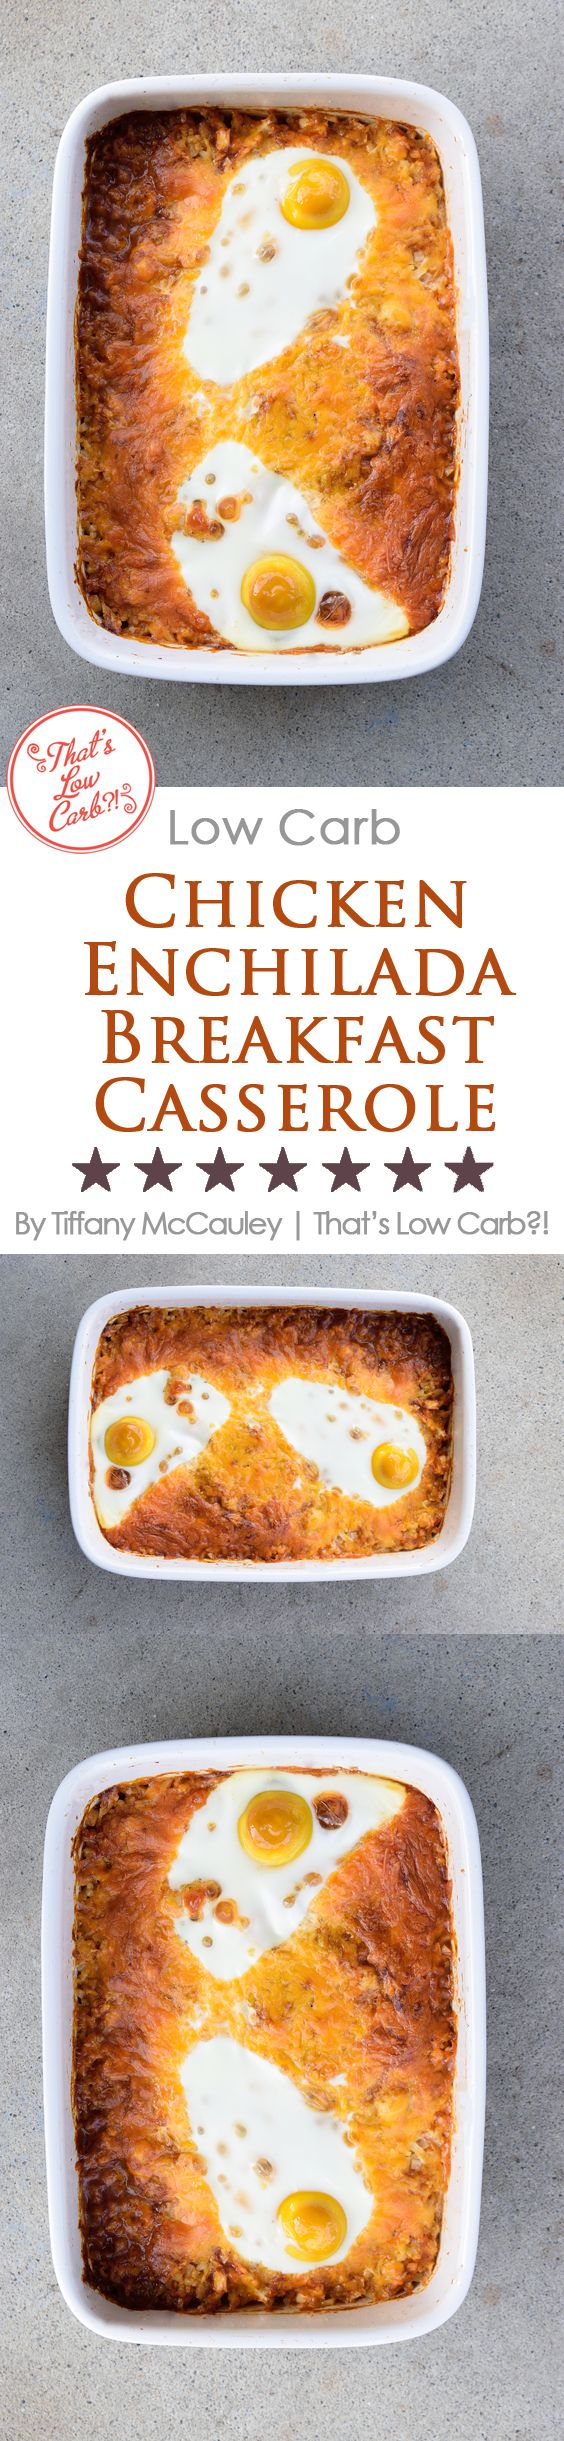 Low Carb Recipes | Chicken Enchilada Breakfast Casserole | Low Carb Mexican Food #LowCarb #LowCarbRecipe #Breakfast ~ https://www.thatslowcarb.com